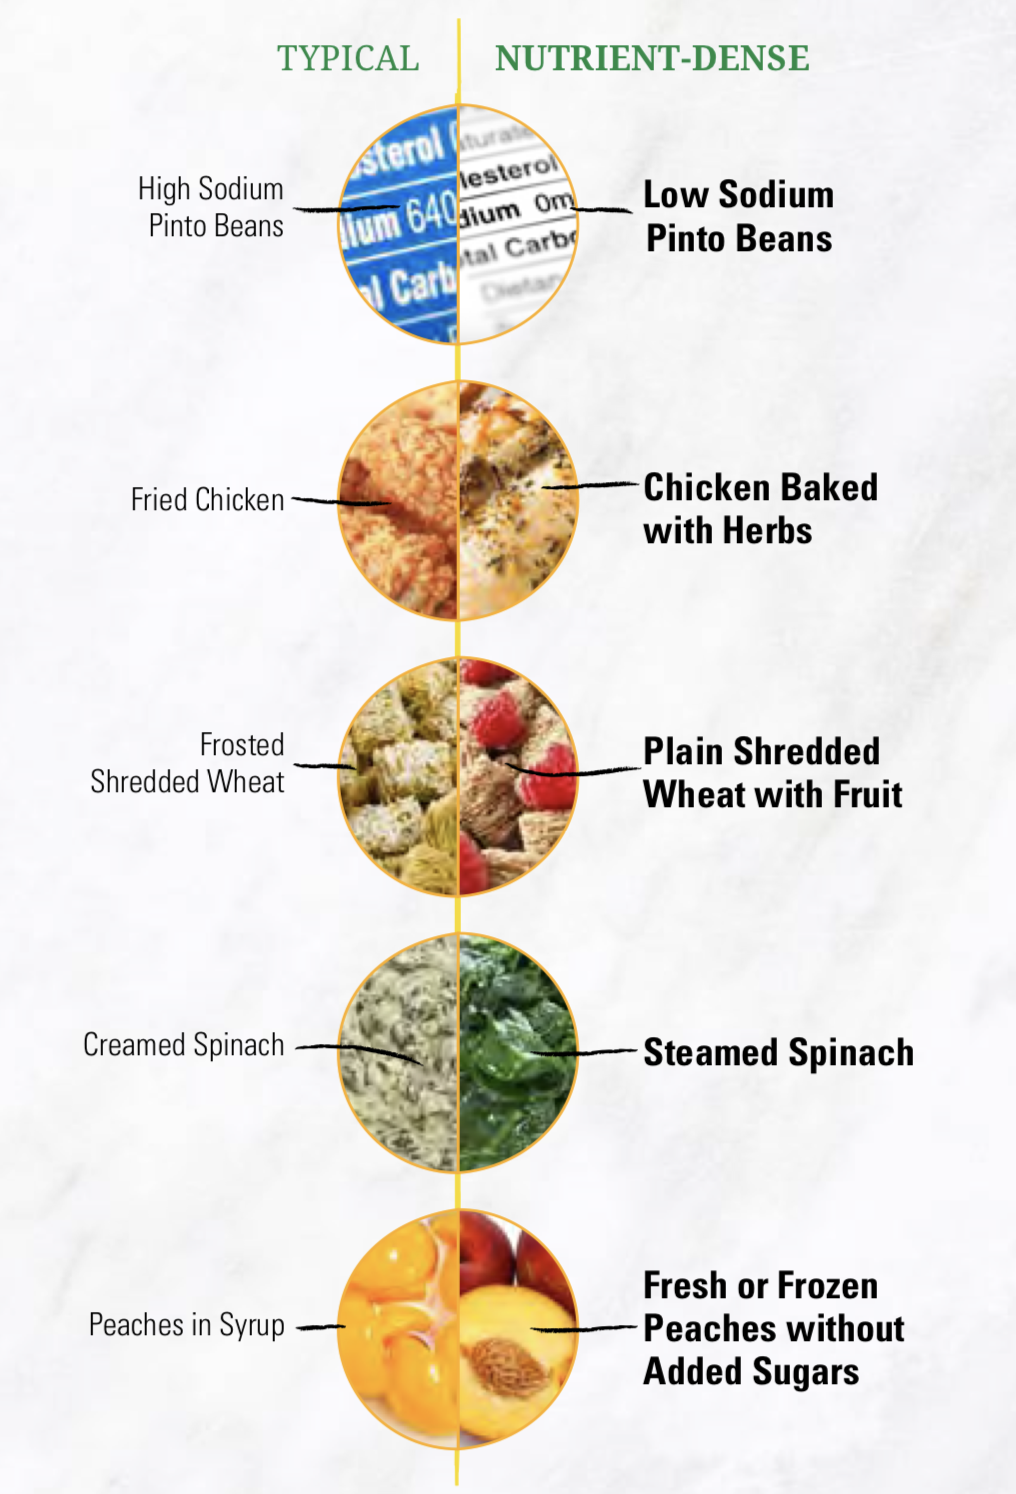 There are 5 circles going down the graphic that are divided in half showing typical food choices on the left side and nutrient-dense choices shown on the right side. For example, fried chicken is on the typical side and chicken baked with herbs is shown on the nutrient-dense side. Also shown are frosted shredded wheat (typical side) and plain wheat cereal (nutrient dense side); creamed spinach (typical side) and steamed spinach (nutrient-dense side); canned peaches (typical side) and fresh or frozen peaches without added sugars (nutrient-dense side).